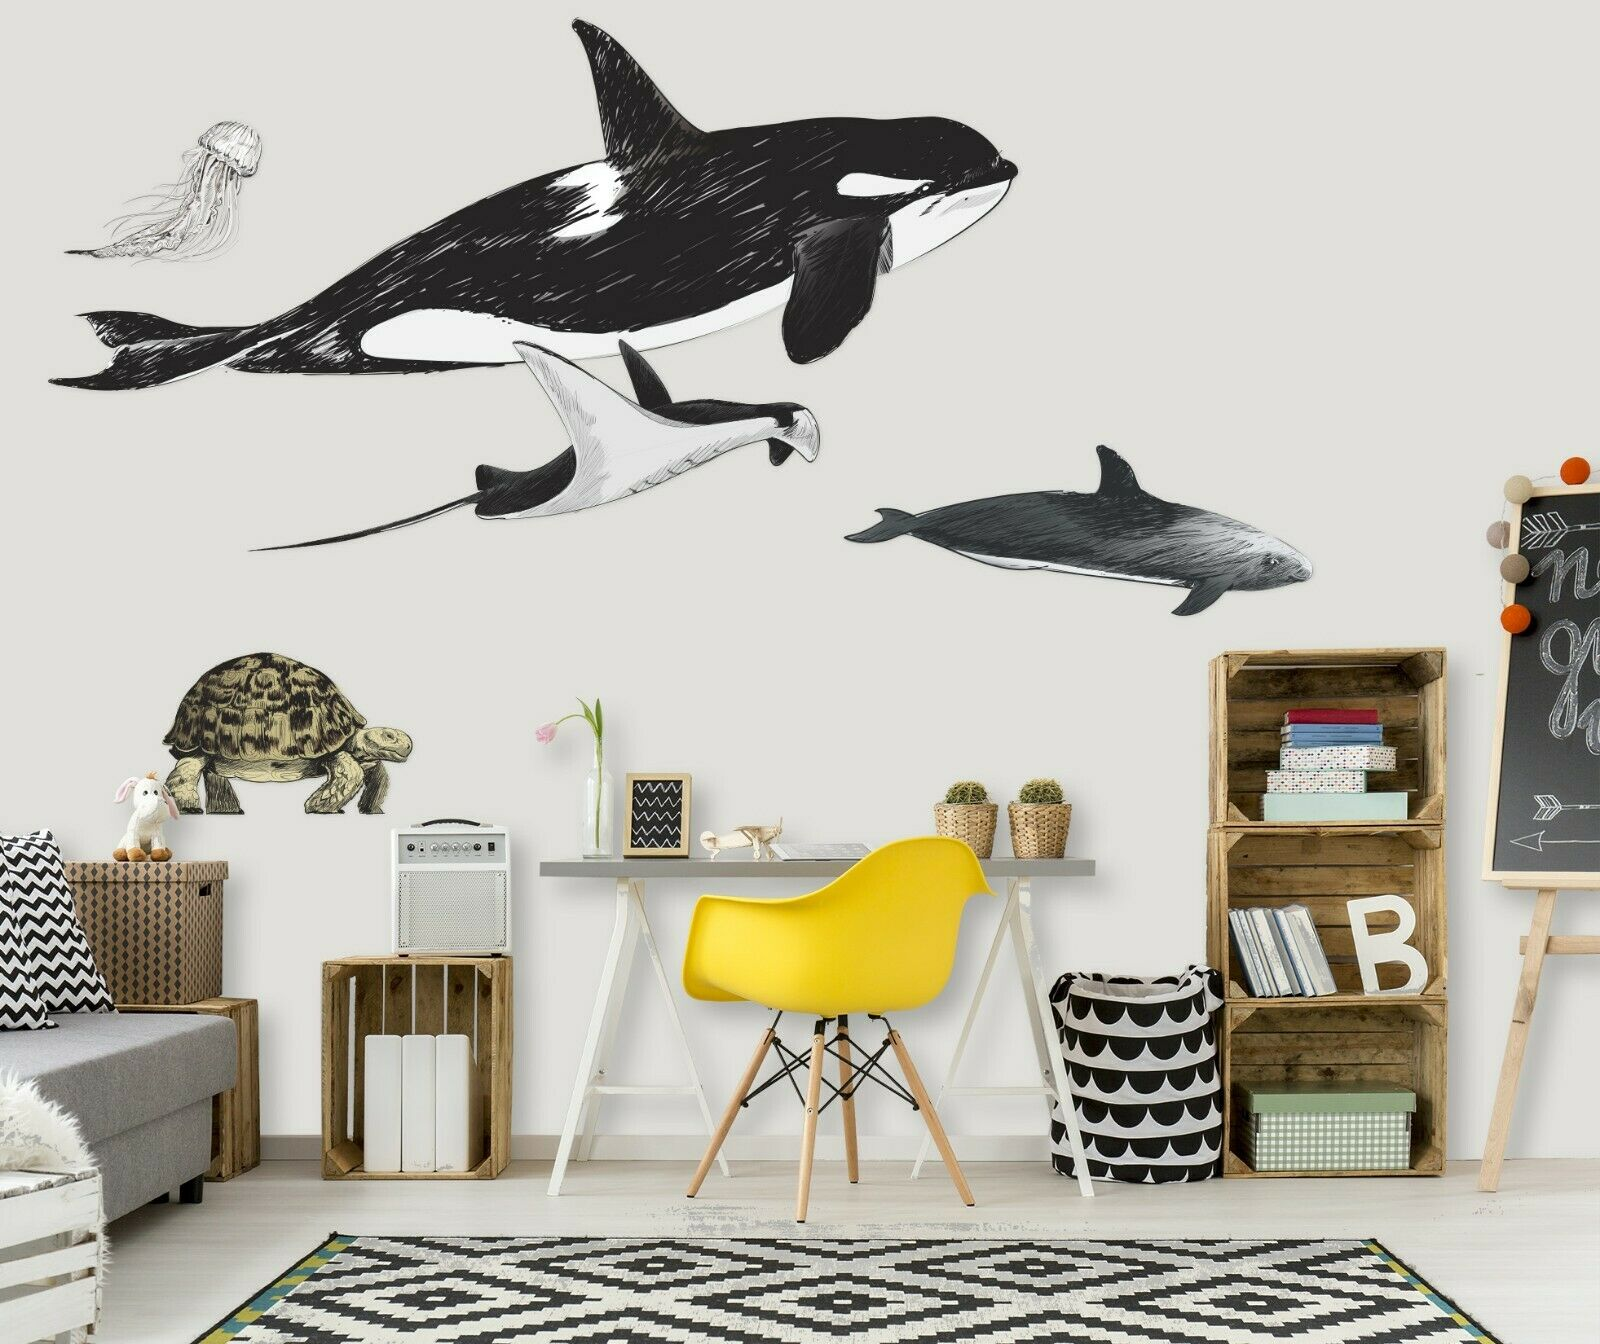 3D Whale Sea Turtle P49 Animal Wallpaper Mural Self-adhesive Removable Zoe